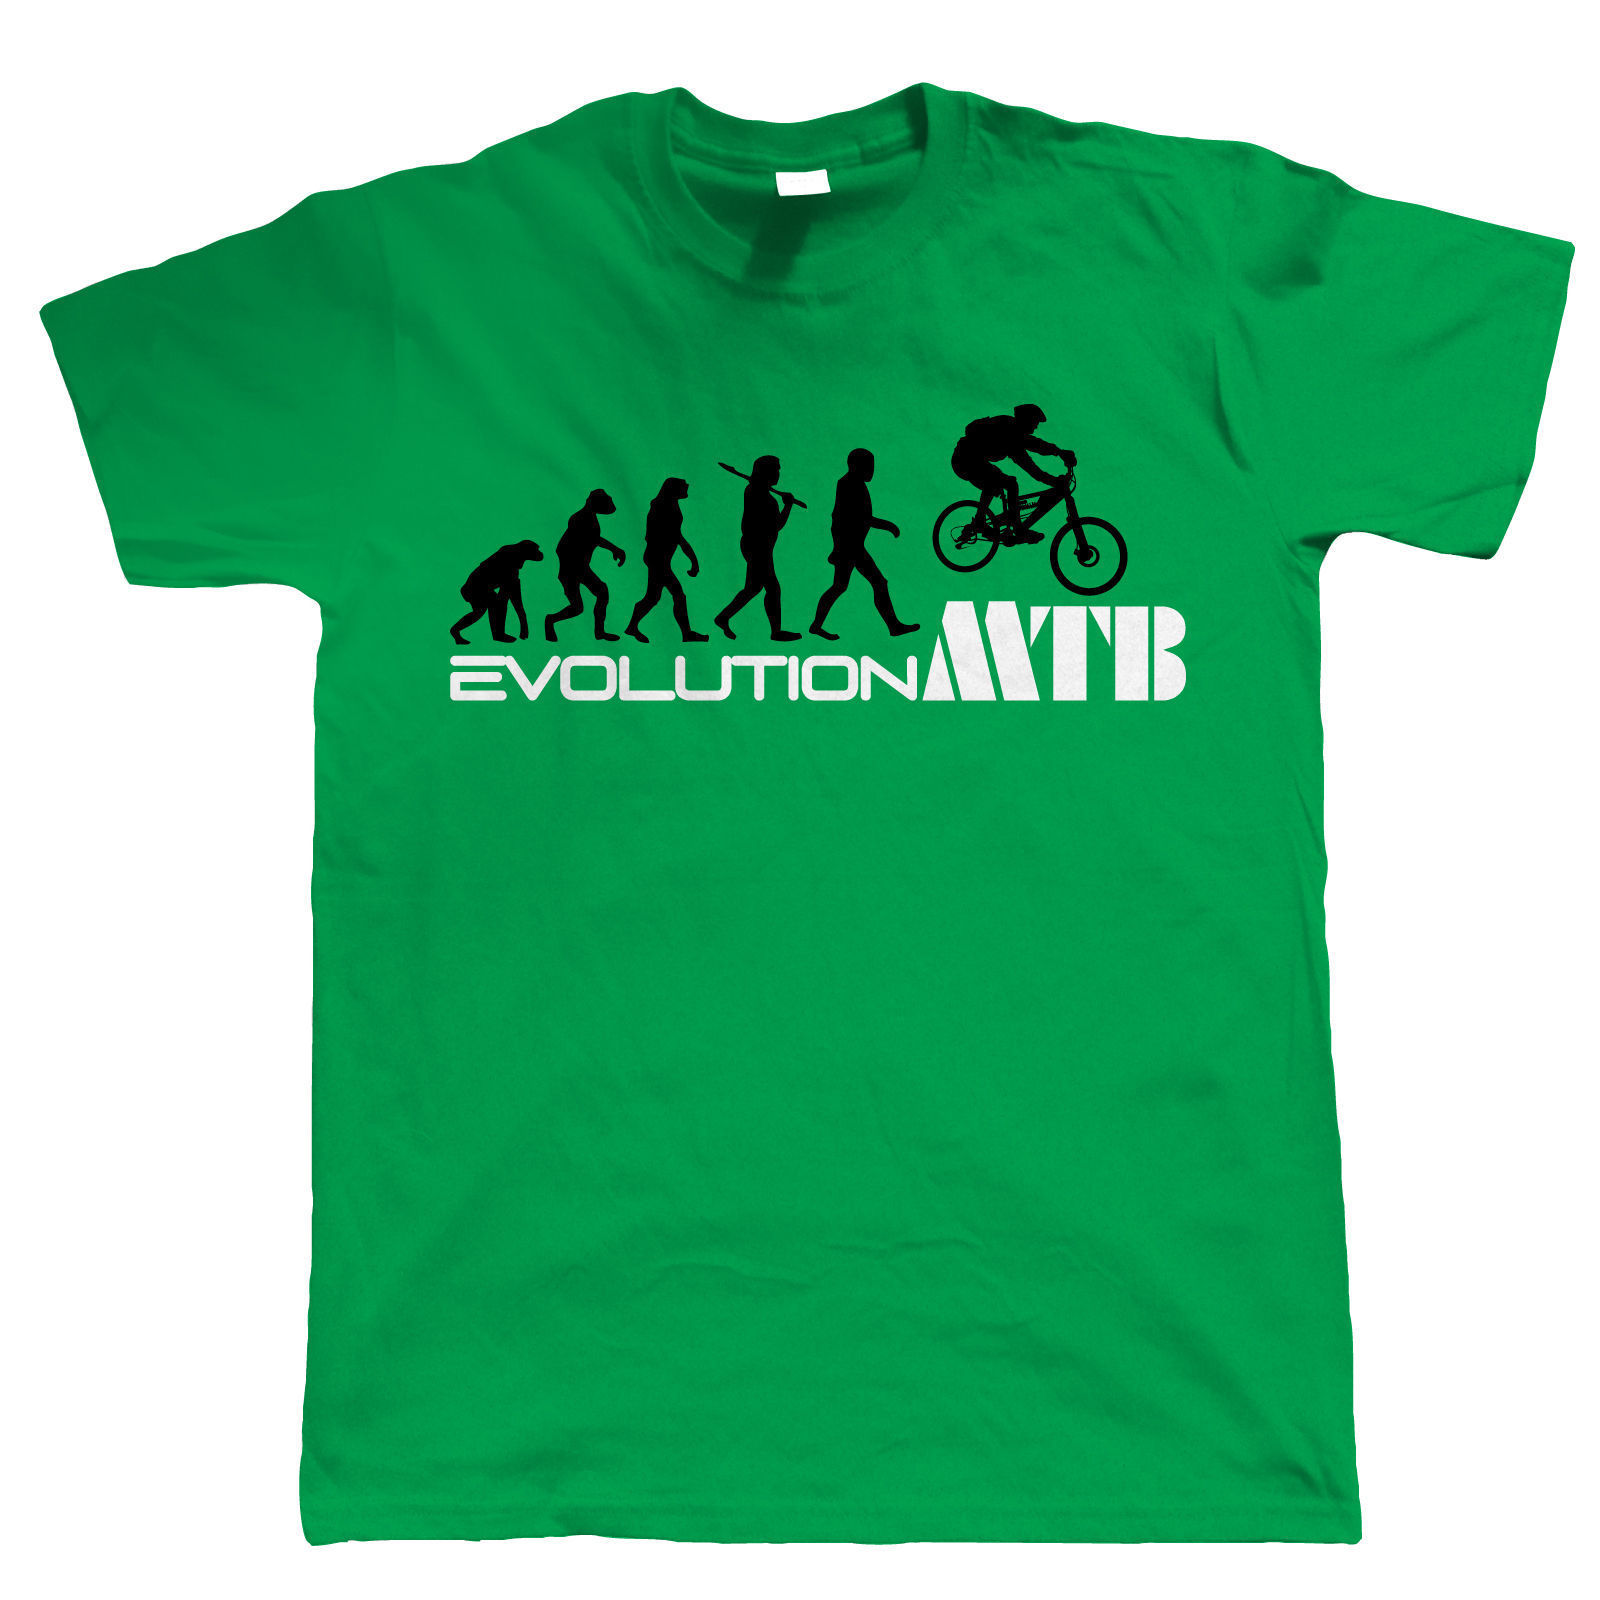 Evolution of Mountain Bikerer T-Shirt - Mountain Bikeer Gift for Dad Him 2018 New Arrival Men Fashion Print T shirt Plus Size